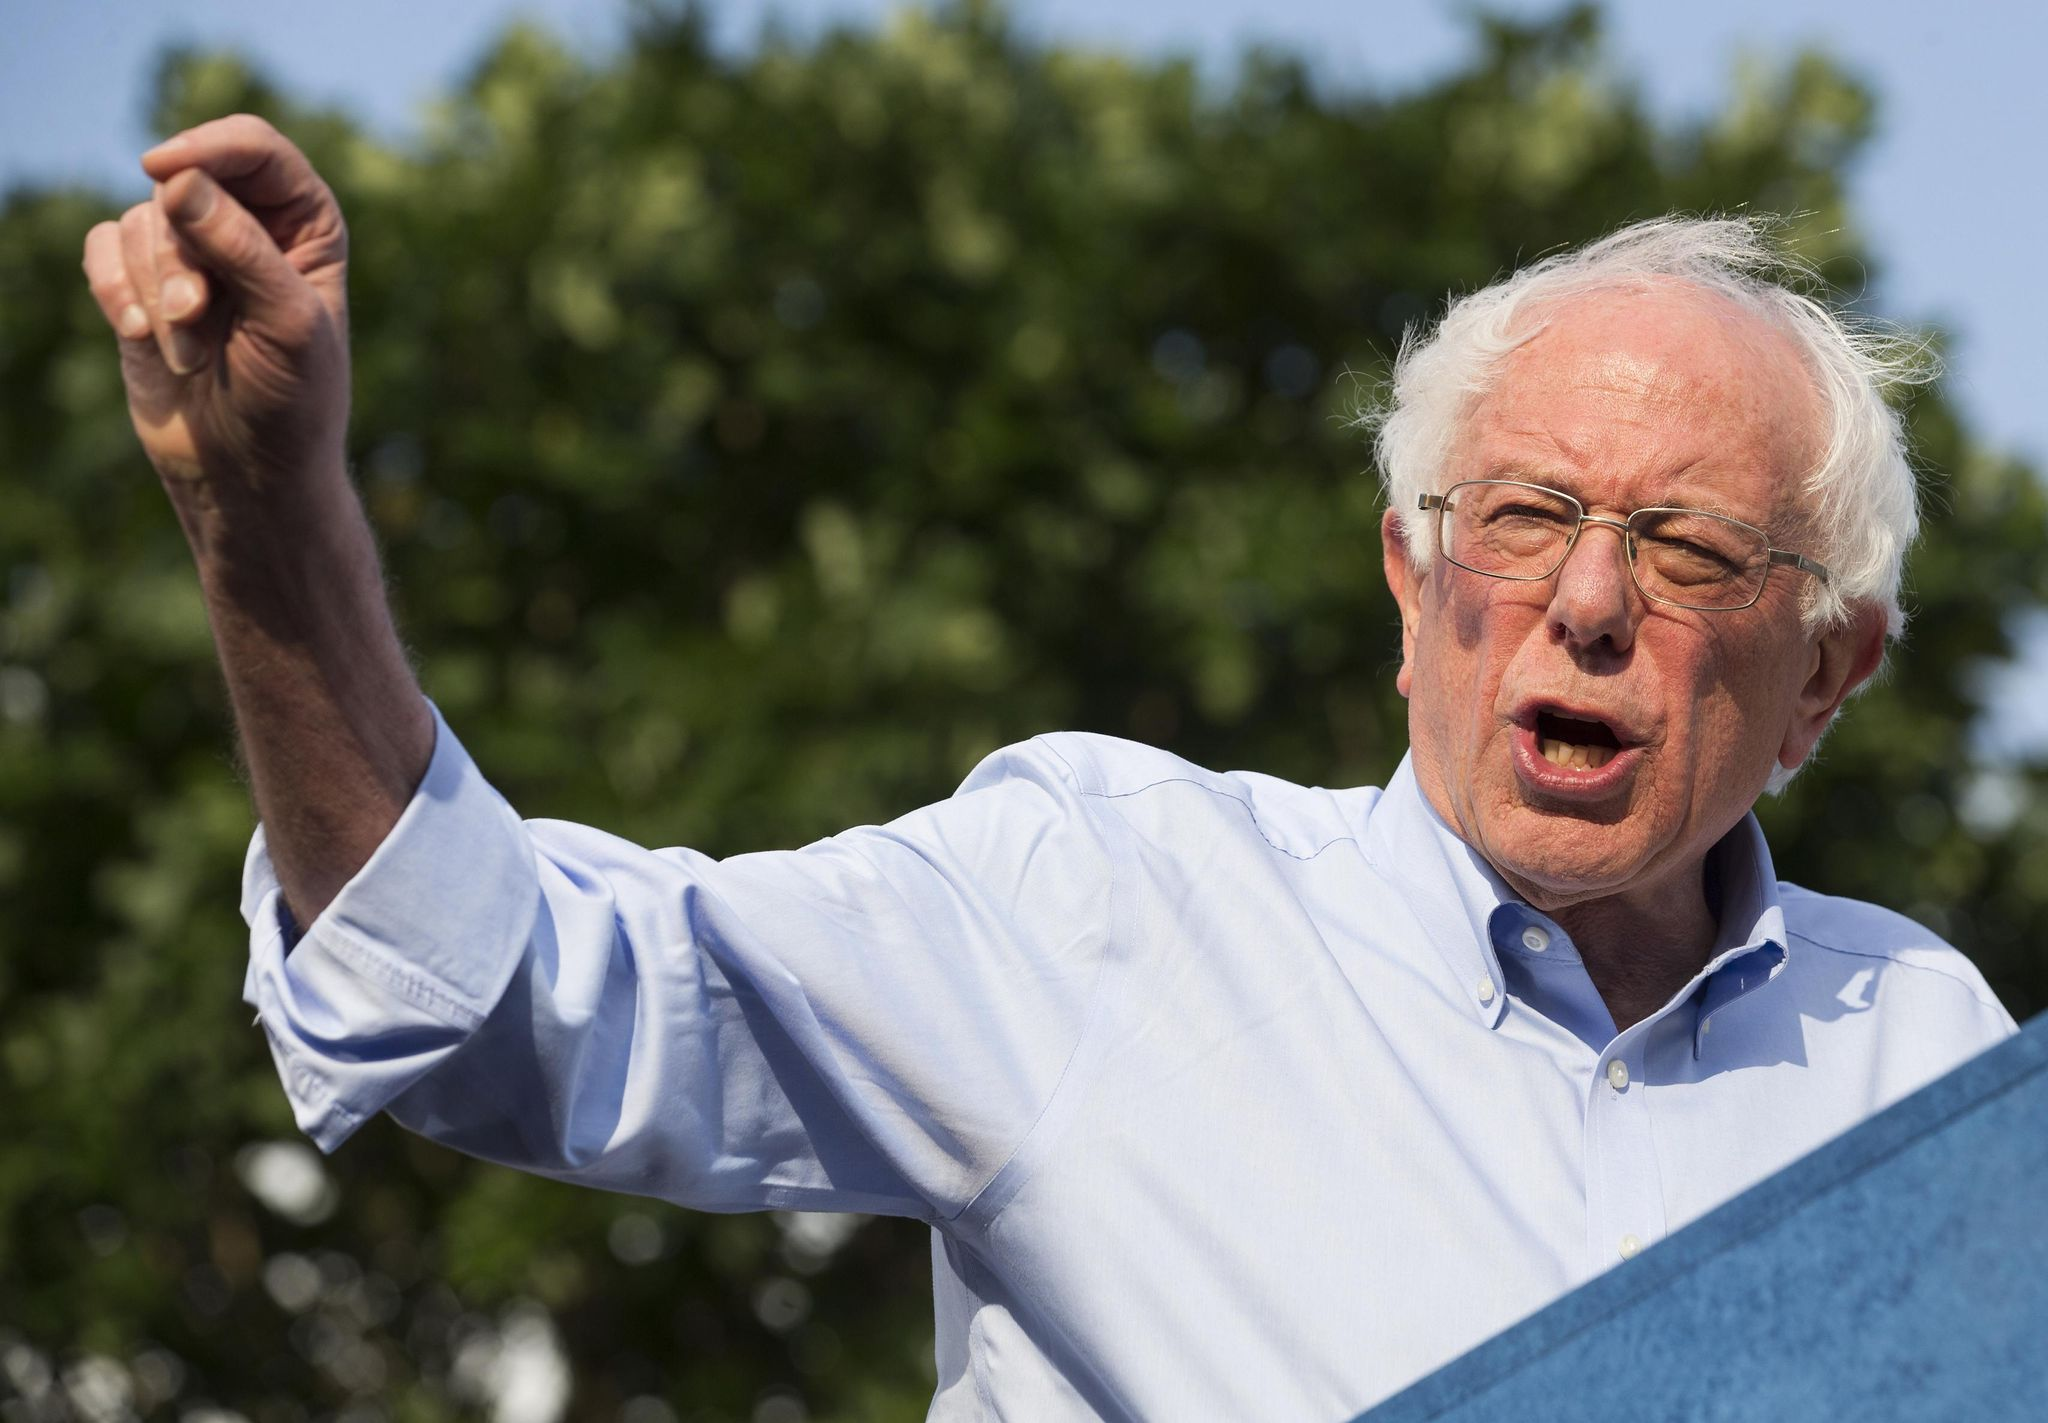 Sanders hits Biden as too soft on climate change: 'We will doom future generations'